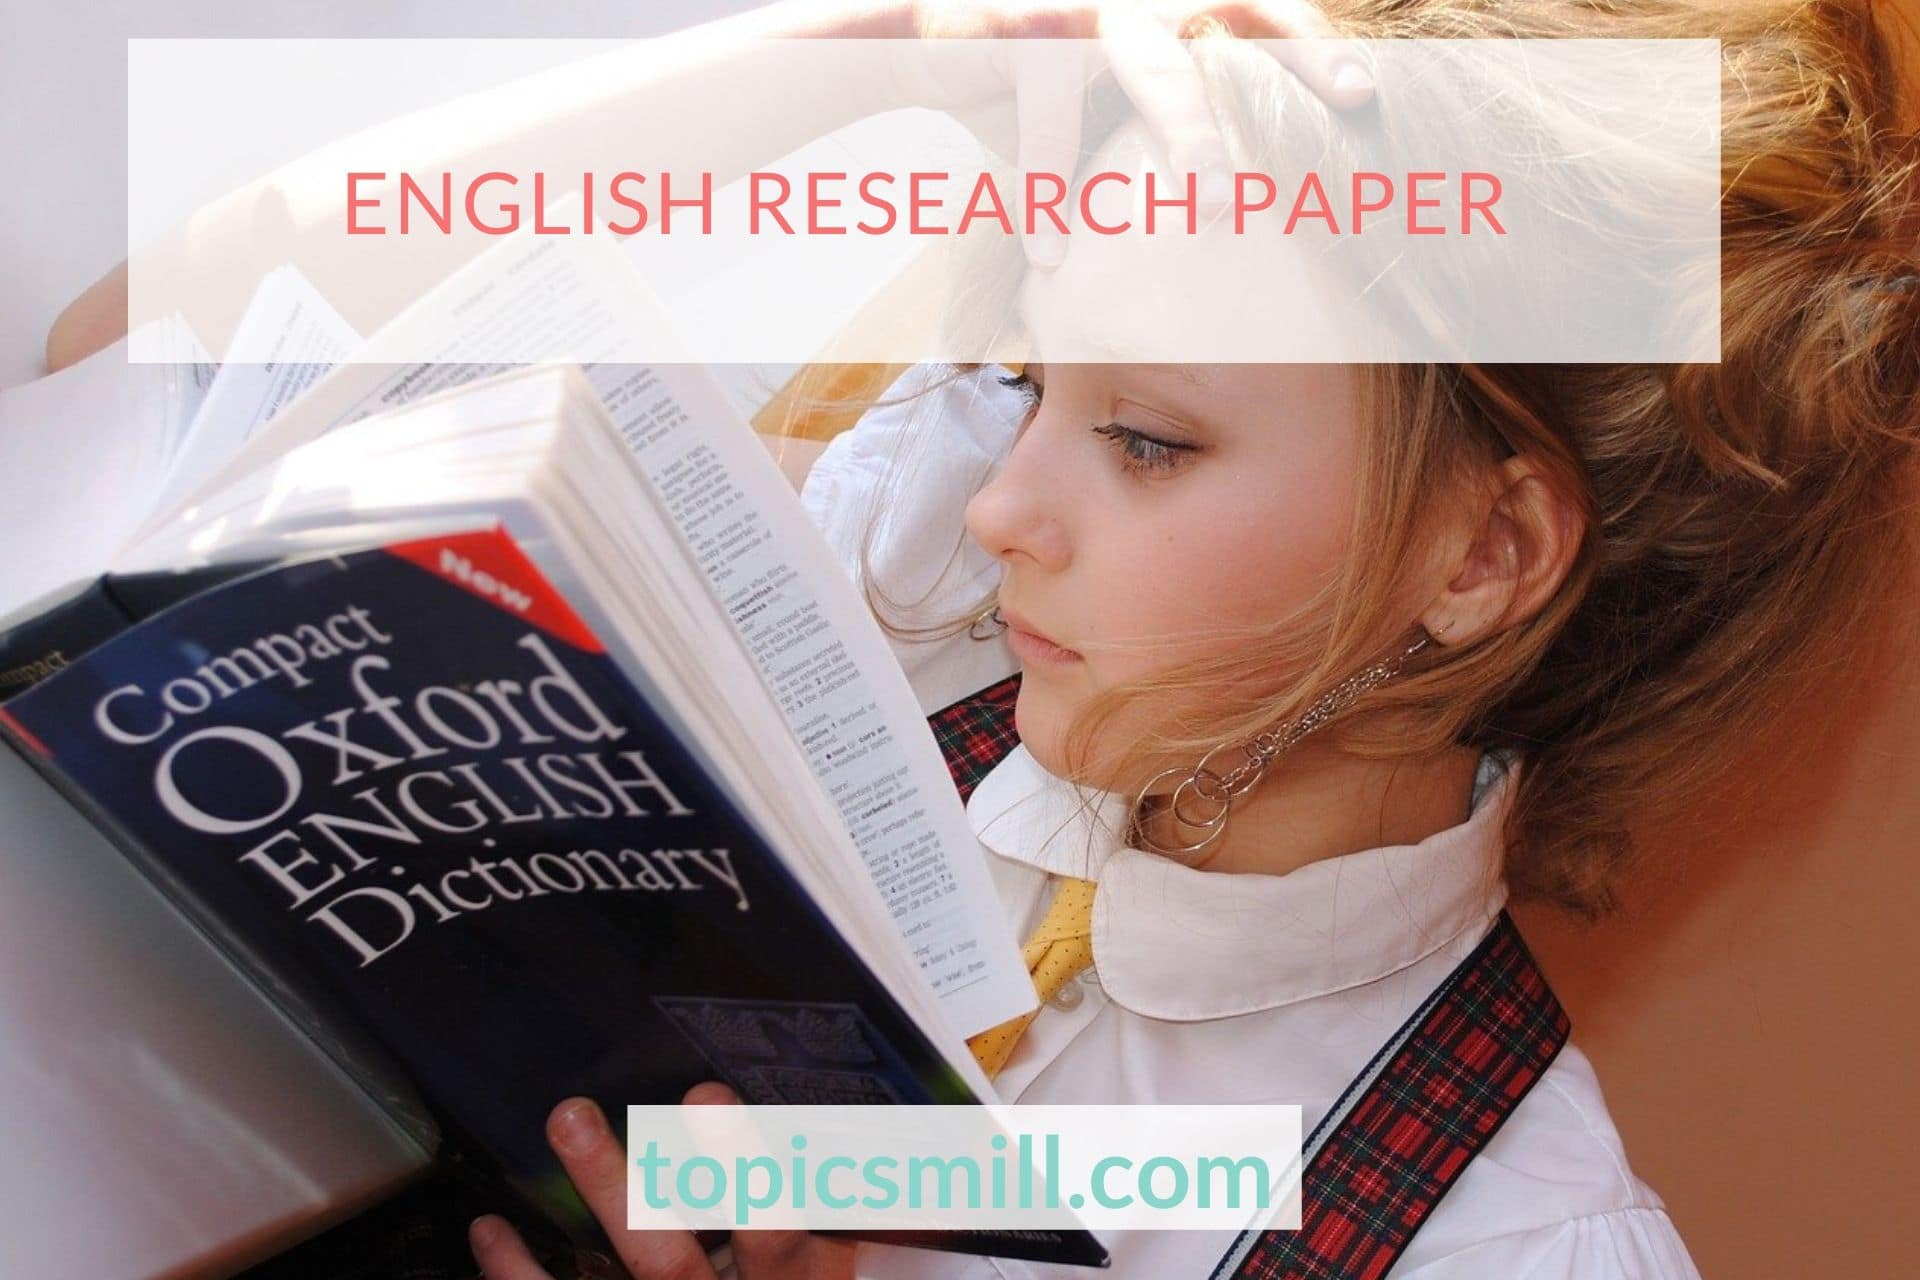 English research papers